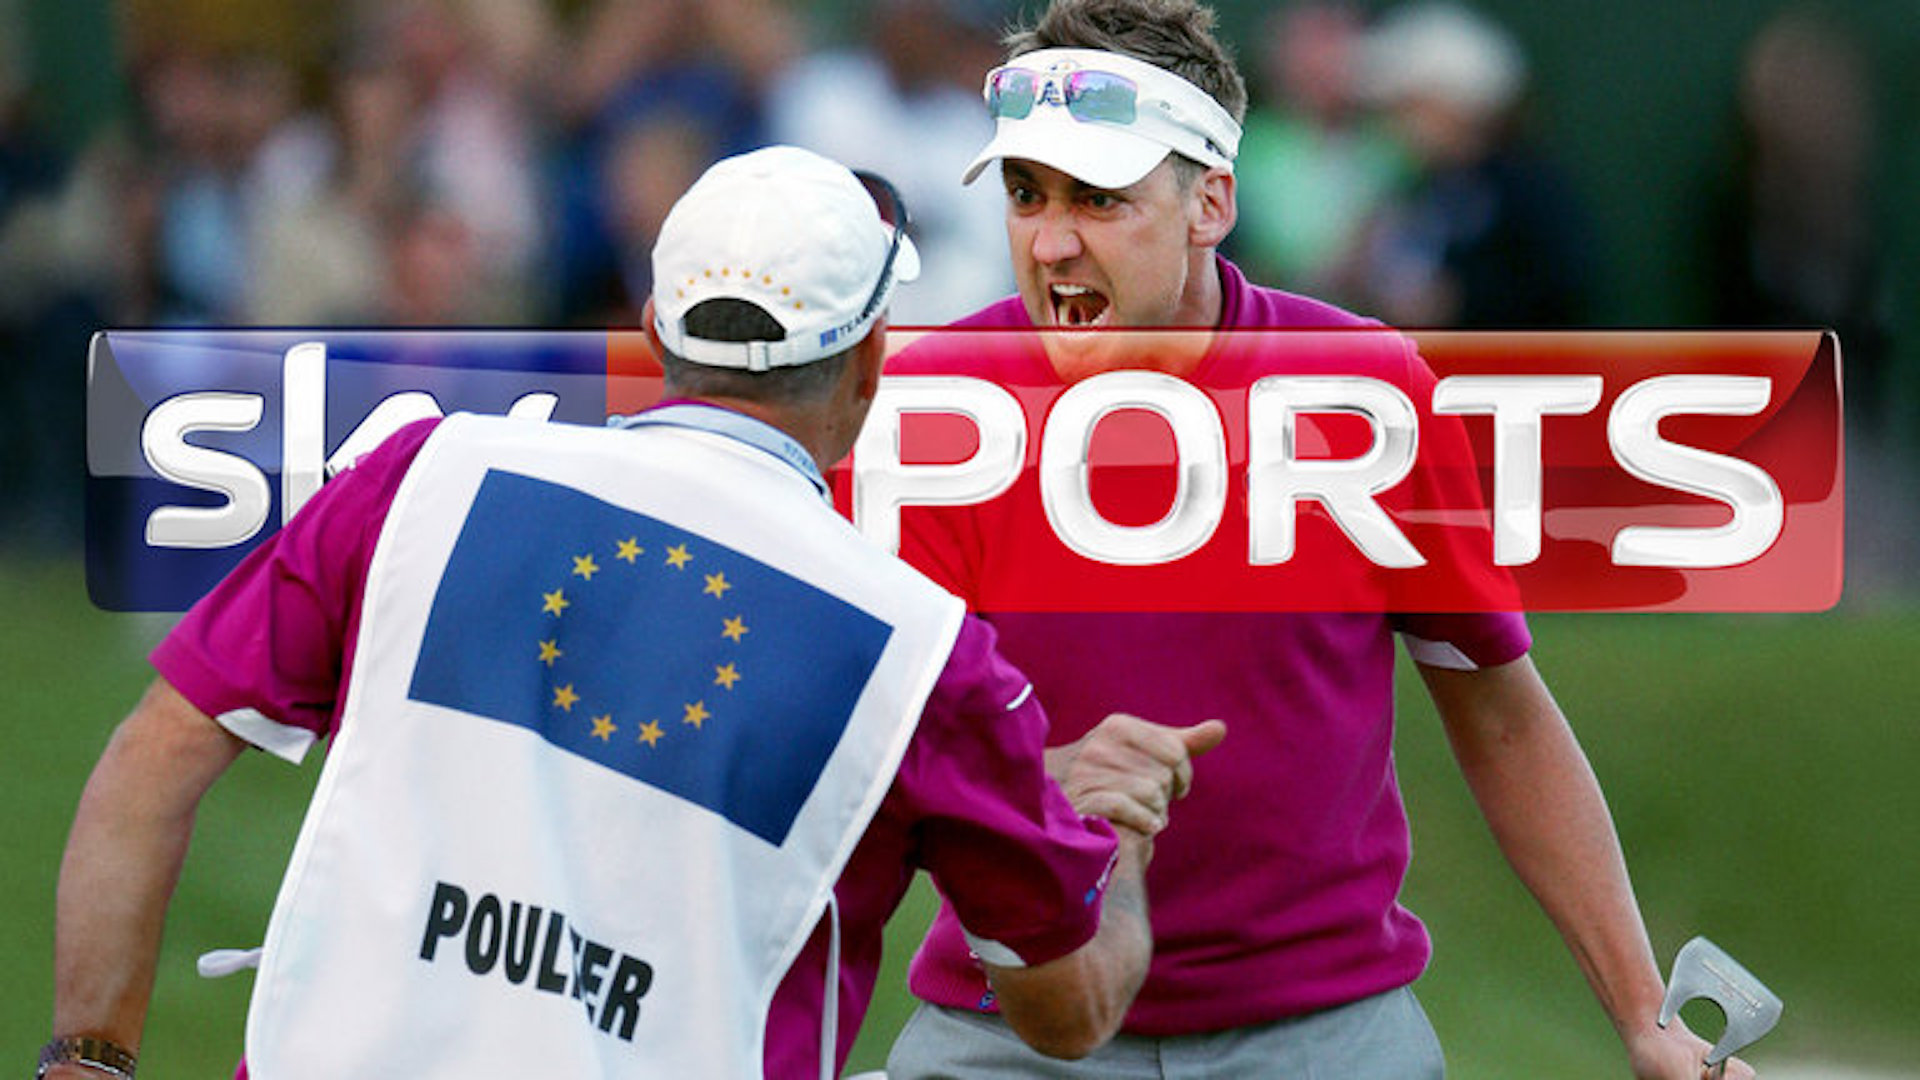 Sky's new dedicated golf channel confirmed